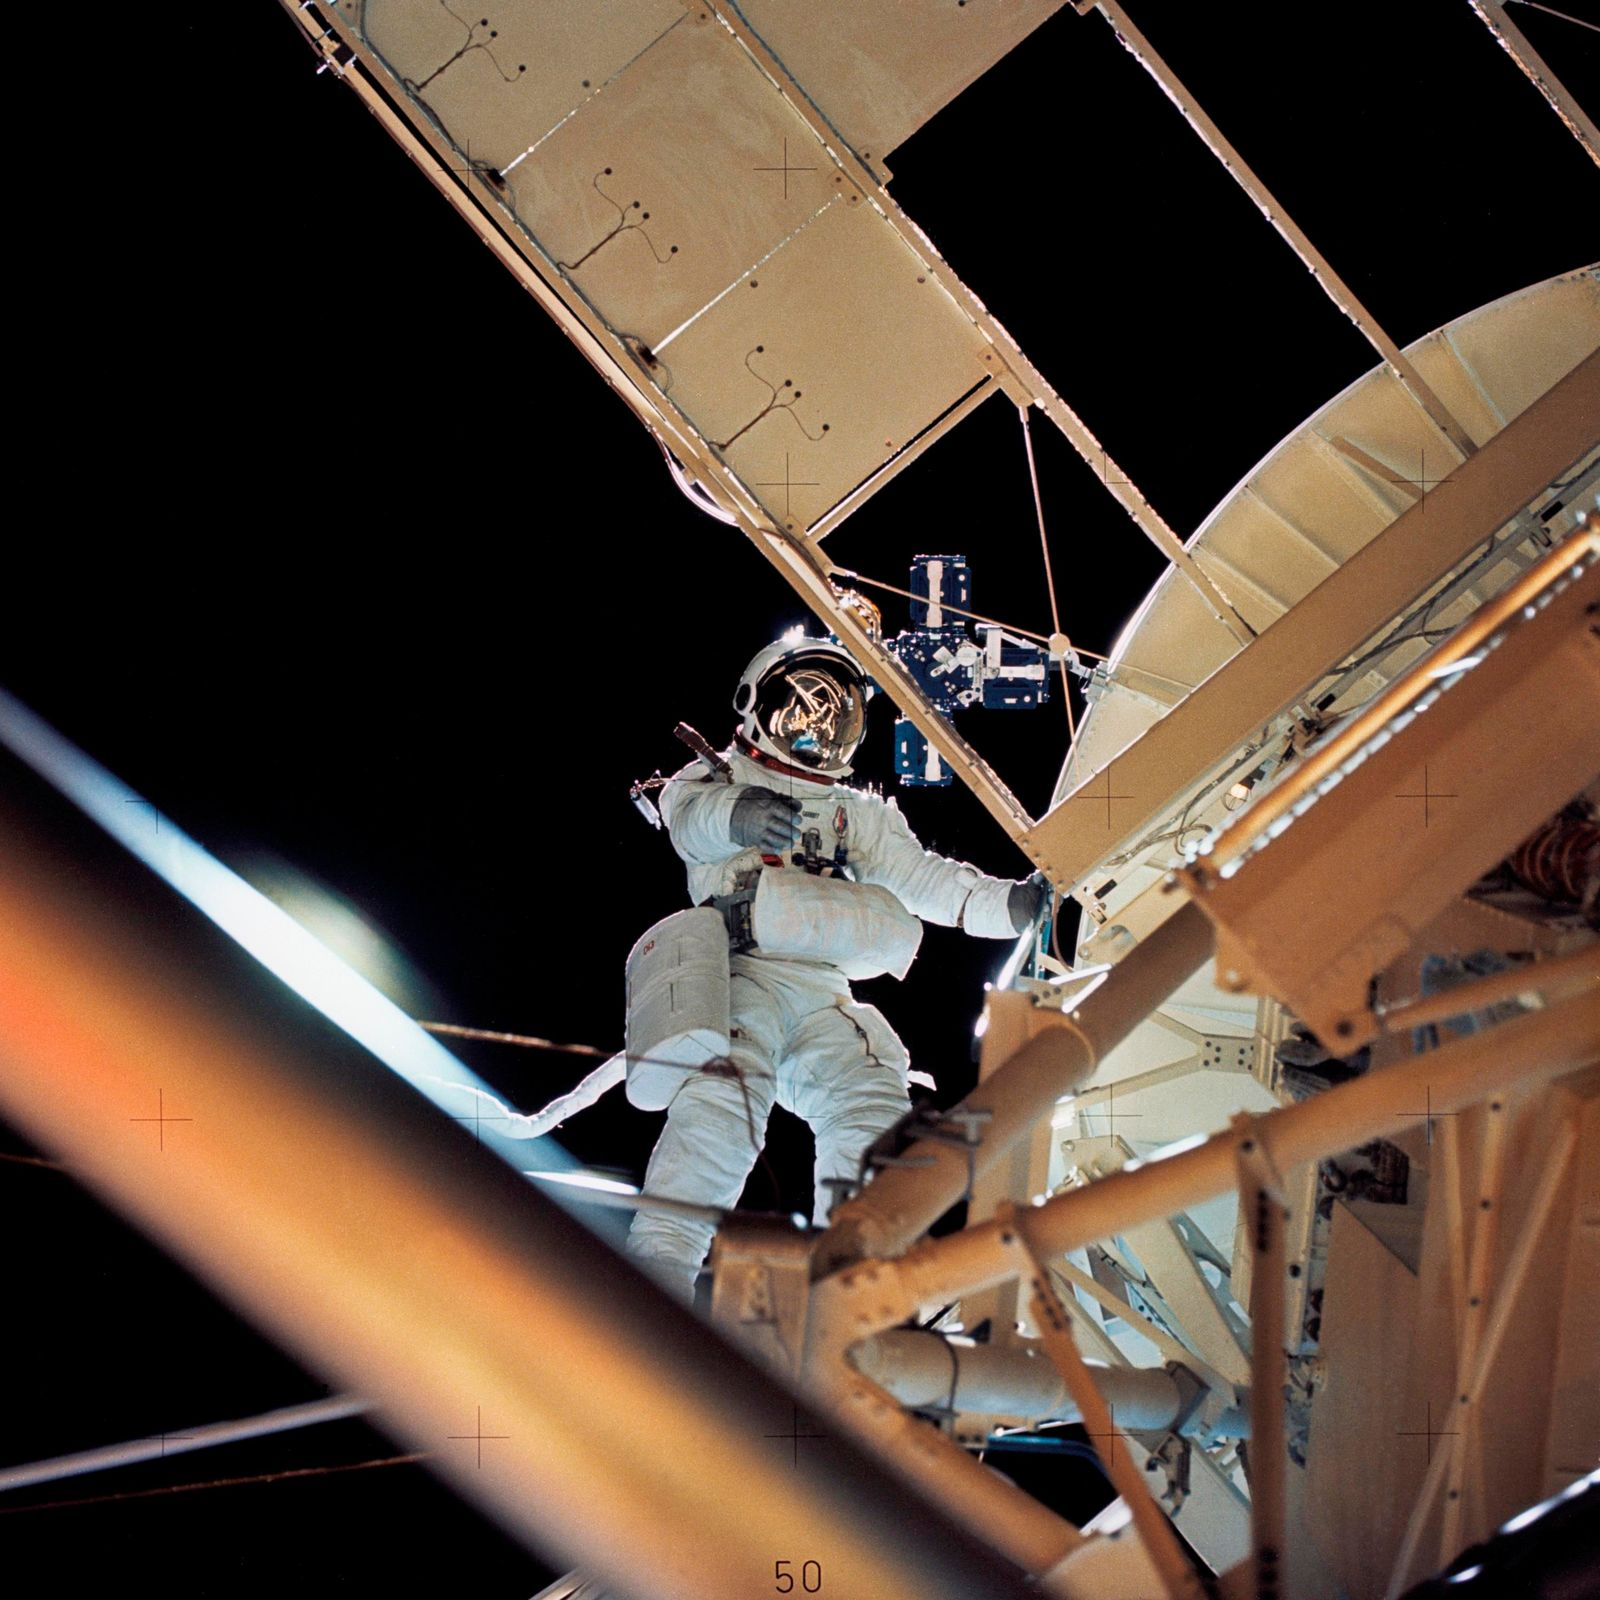 In this August 1973 photo made available by NASA, astronaut Owen K. Garriott retrieves an imagery experiment from the Apollo Telescope Mount attached to the Skylab in Earth orbit.{ } (NASA via AP)